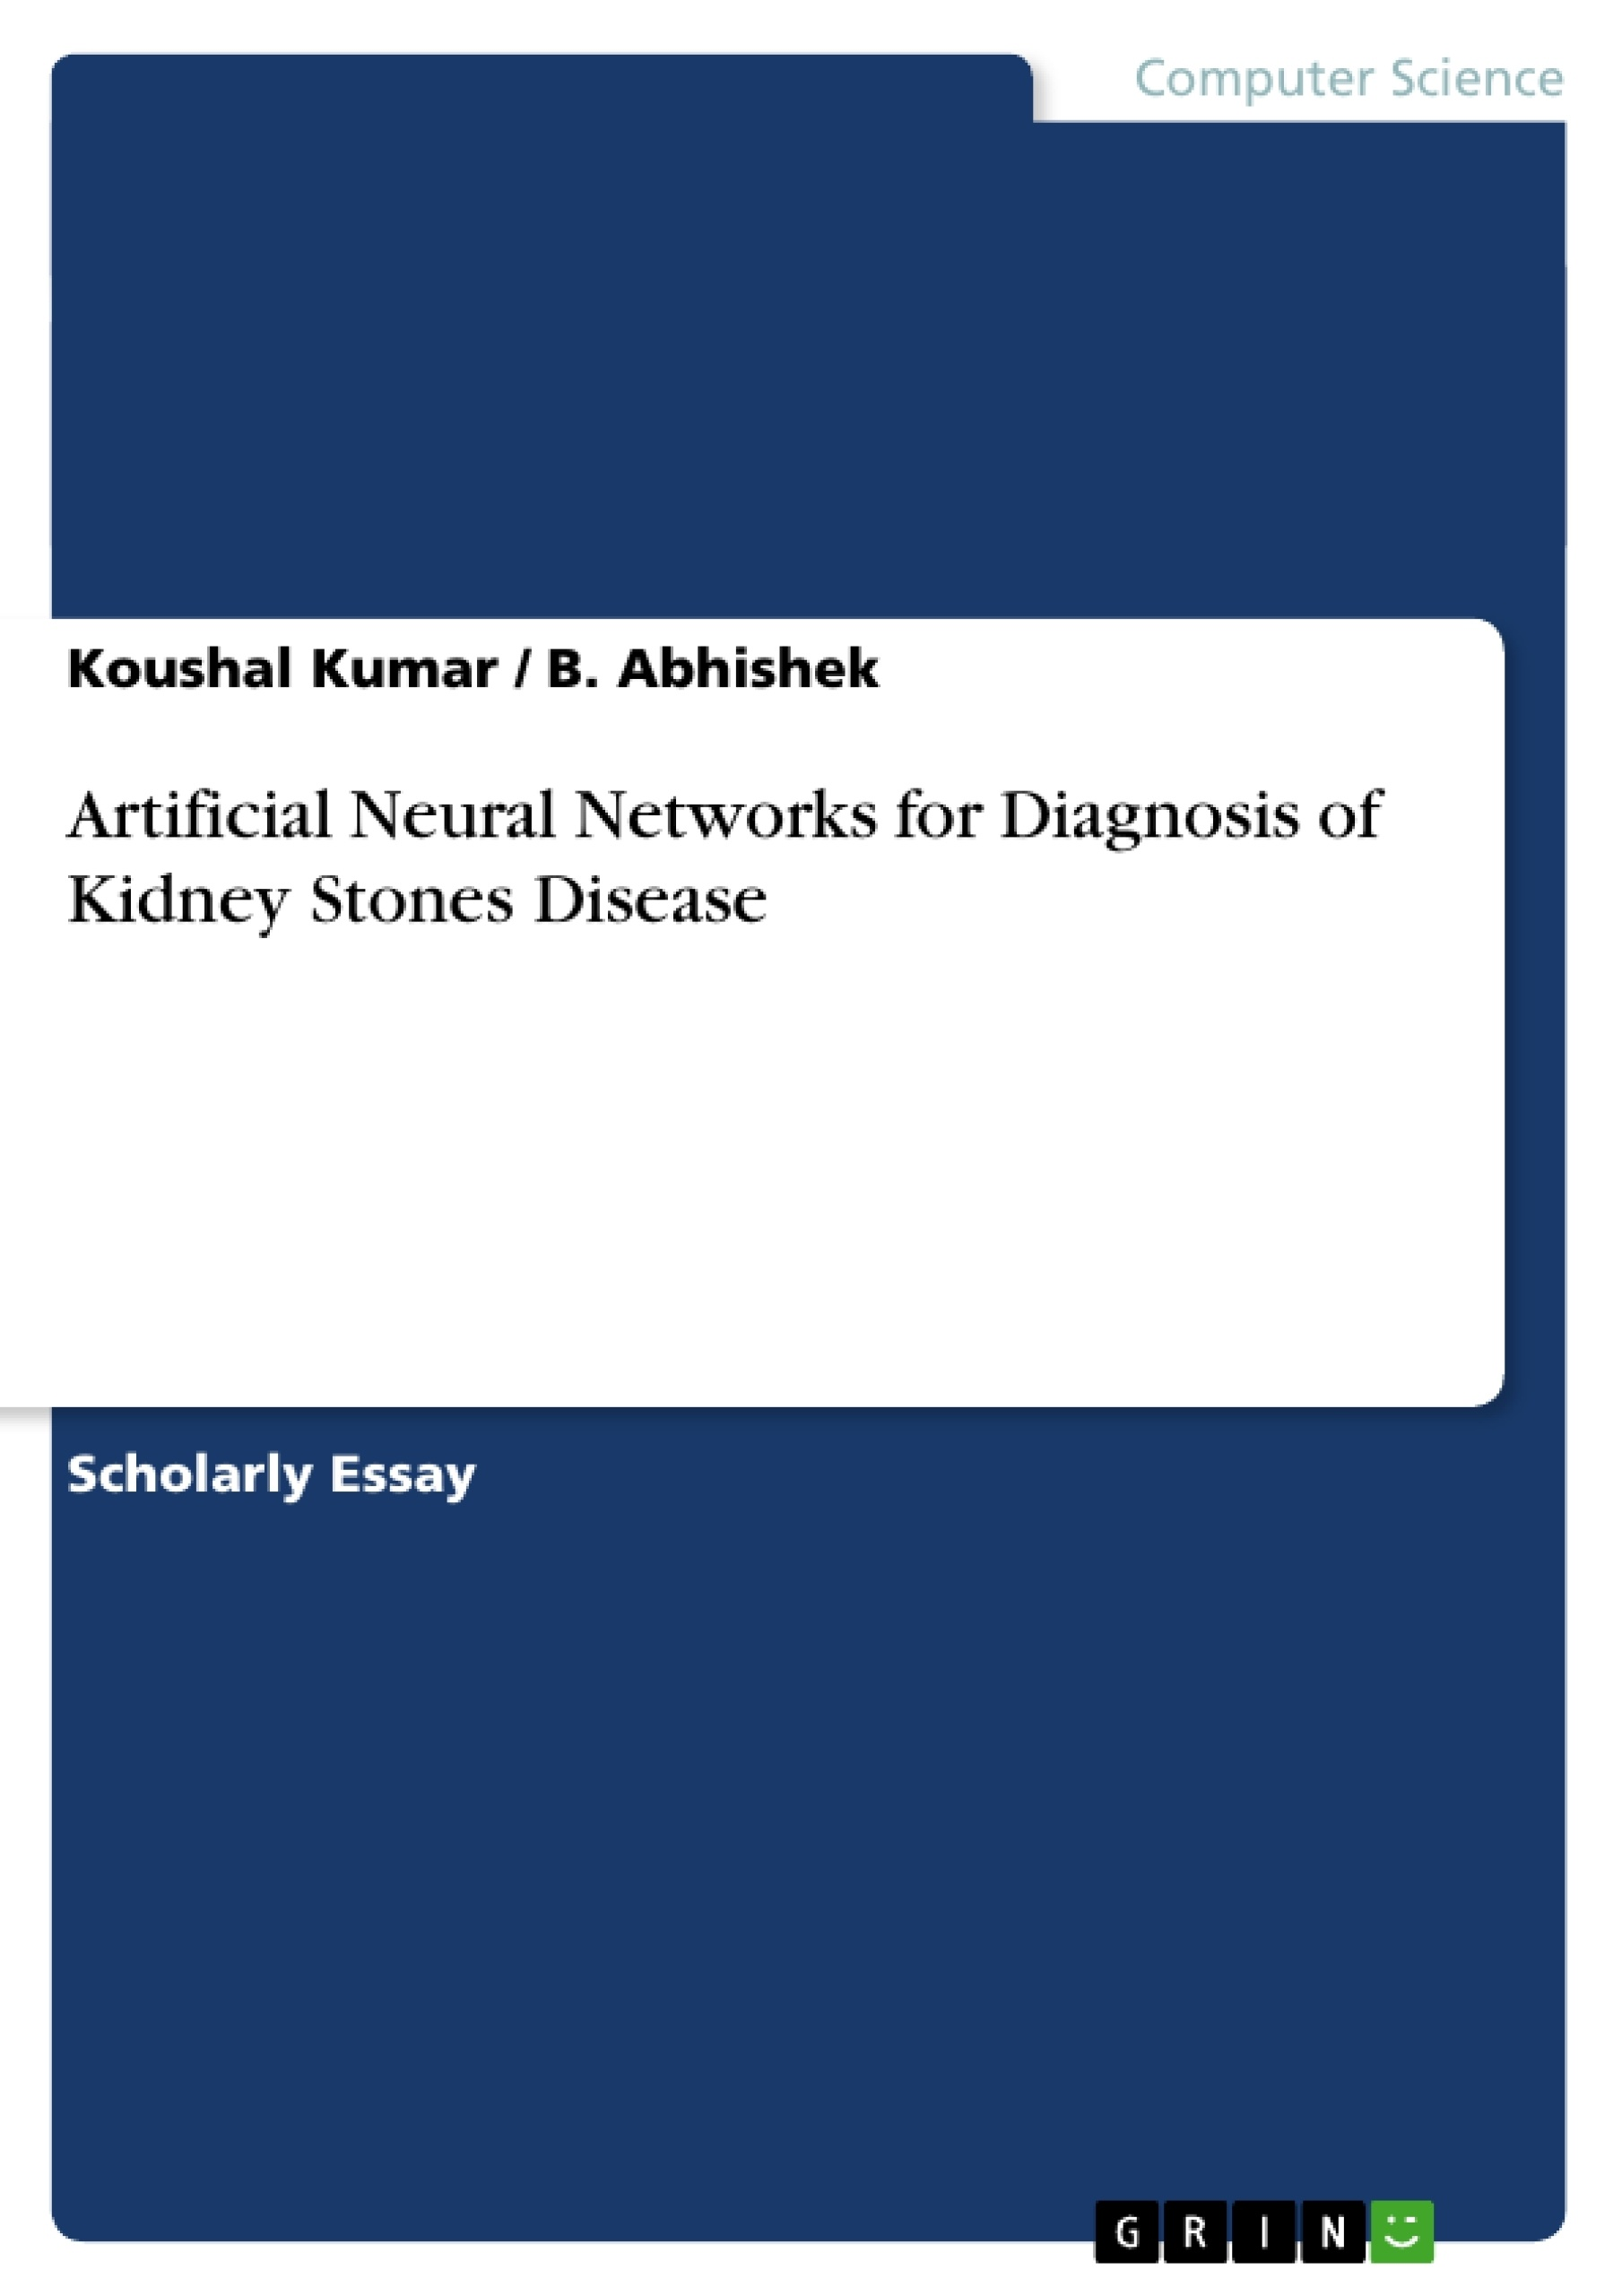 Title: Artificial Neural Networks for Diagnosis of Kidney Stones Disease